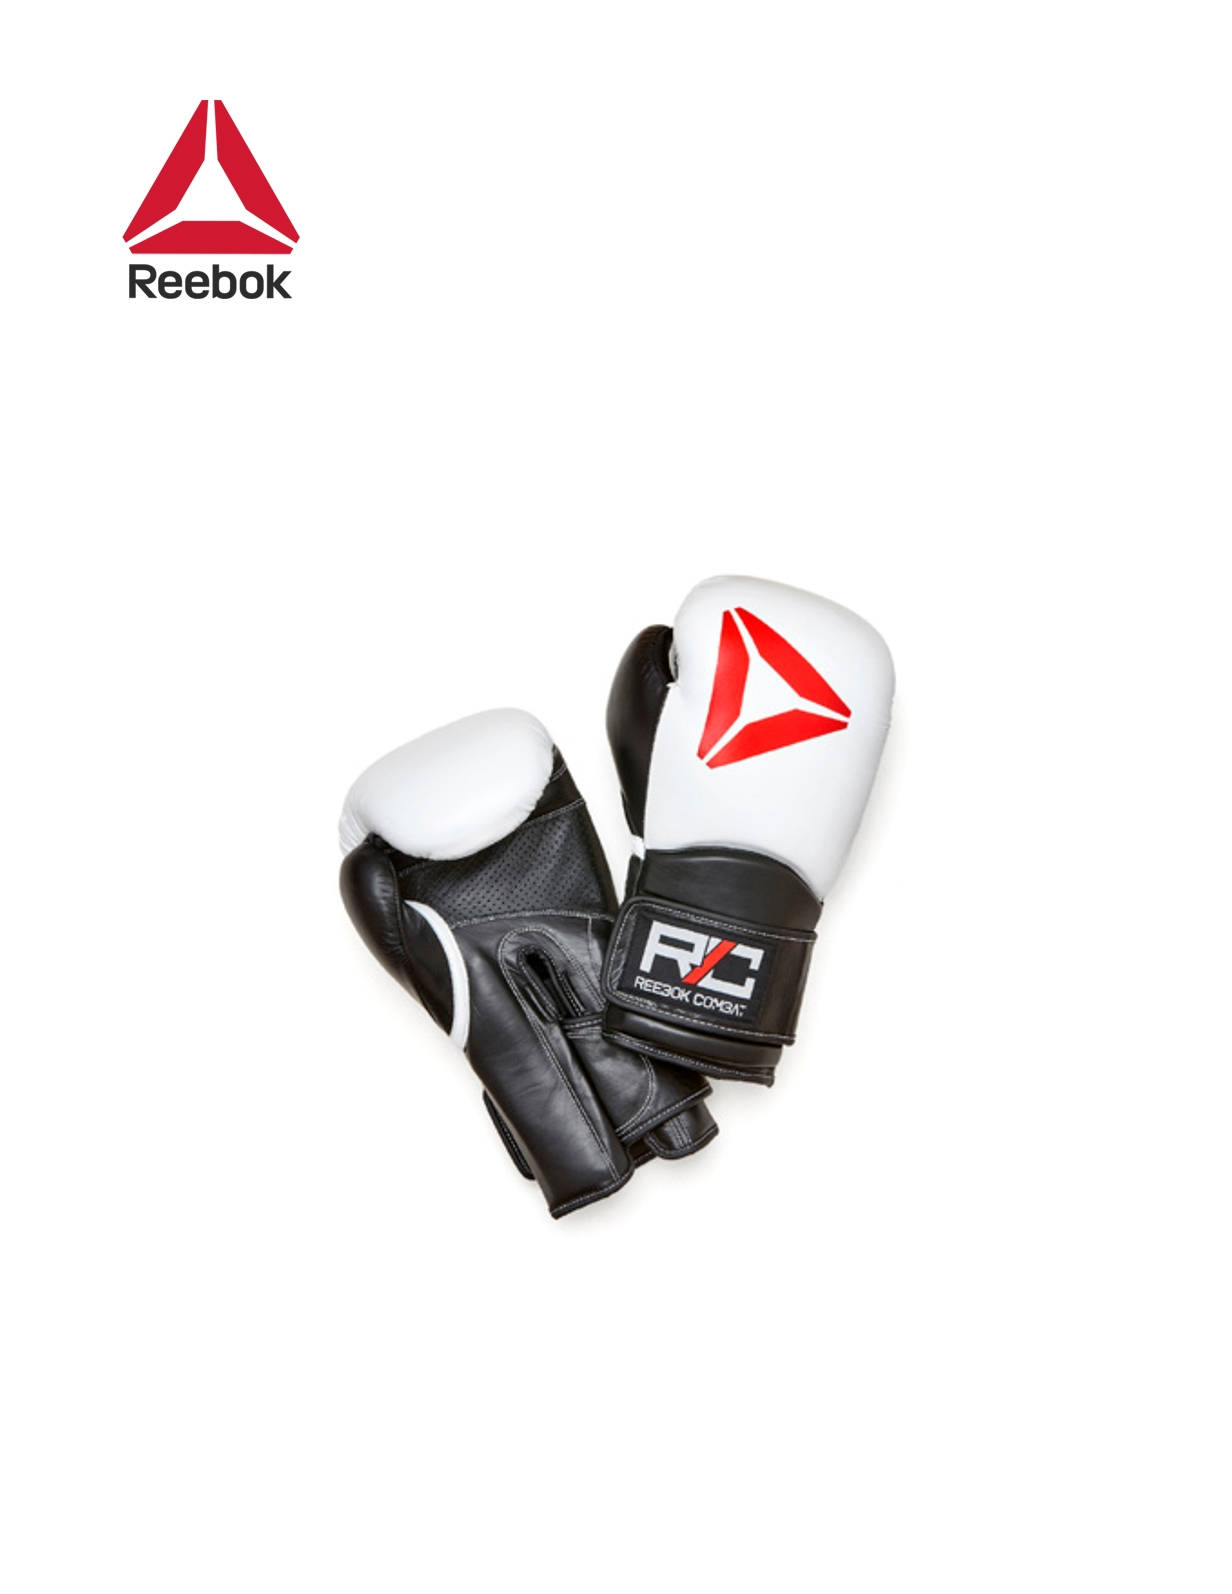 TRAINING GLOVE - WHITE / BLACK